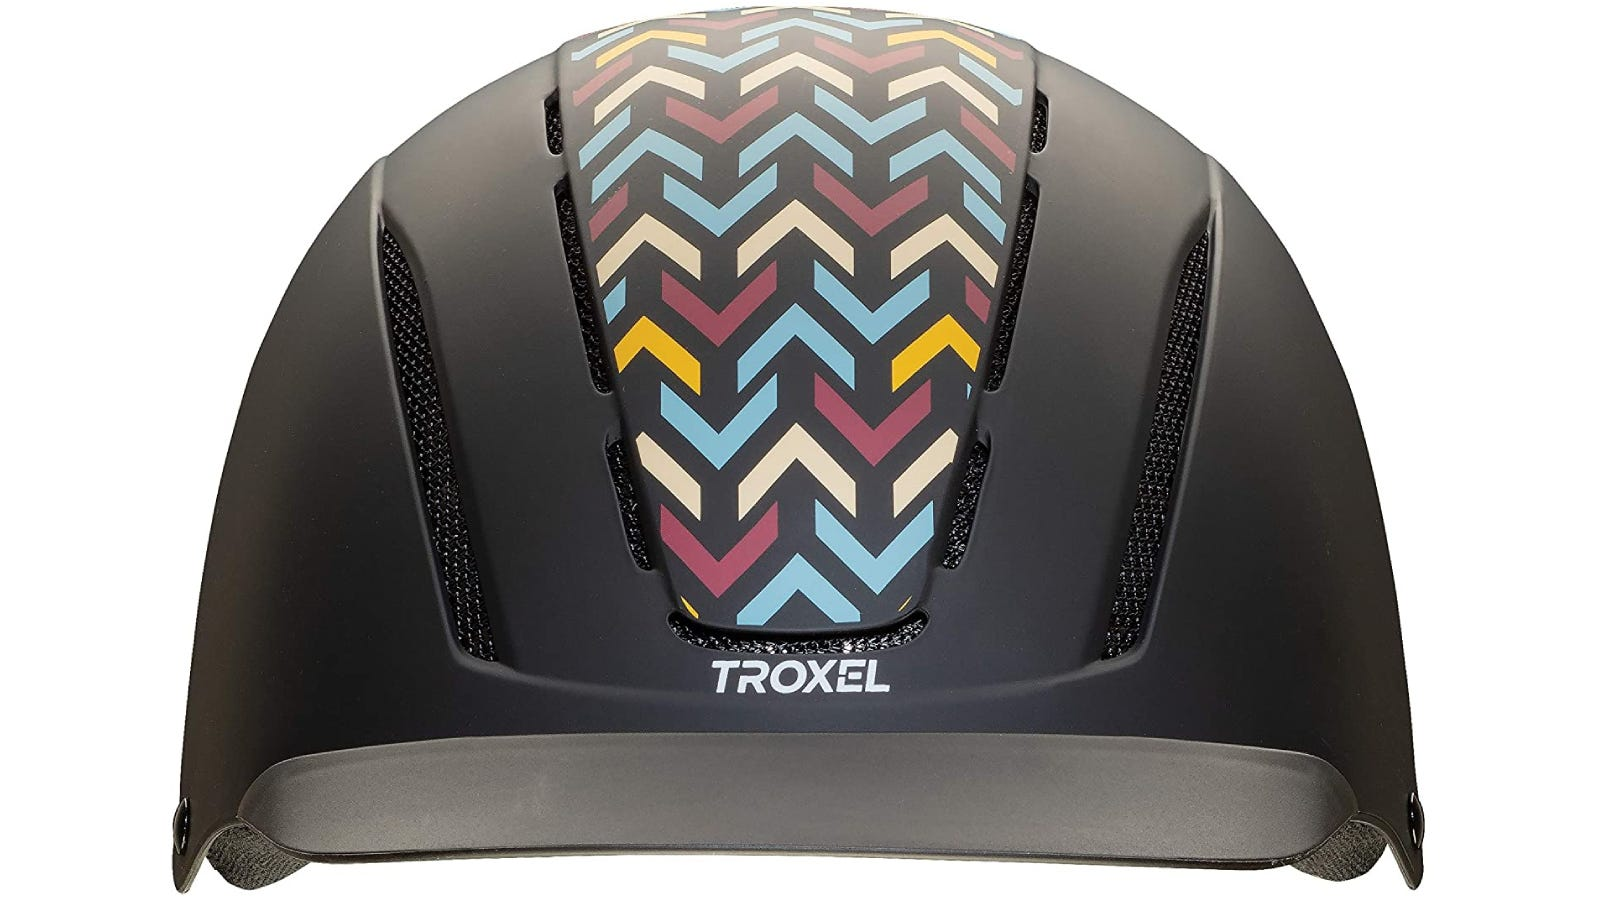 A horse riding helmet with a colorful chevron patterns down the center.